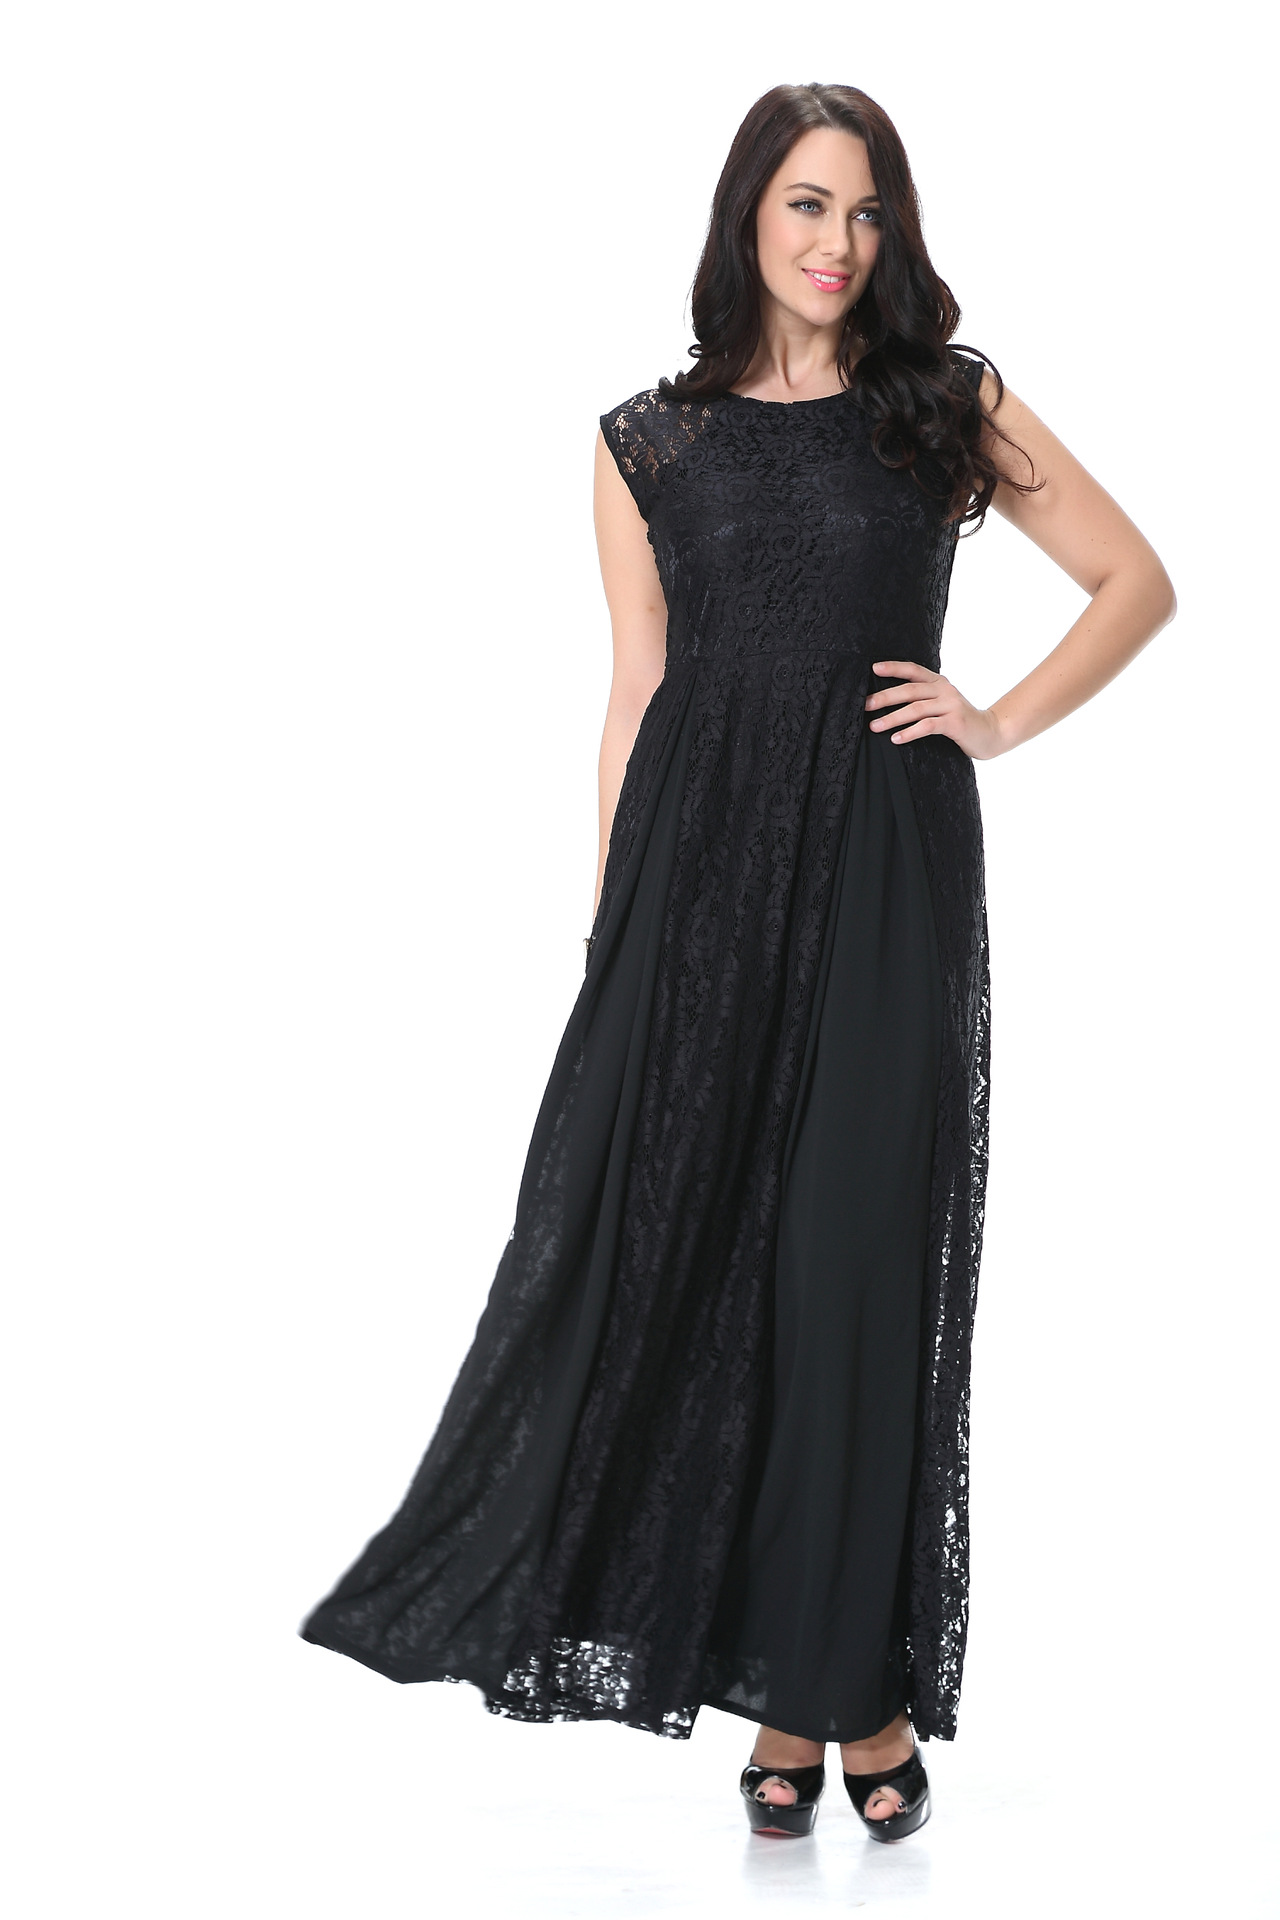 Fullsize Of Maternity Formal Dresses